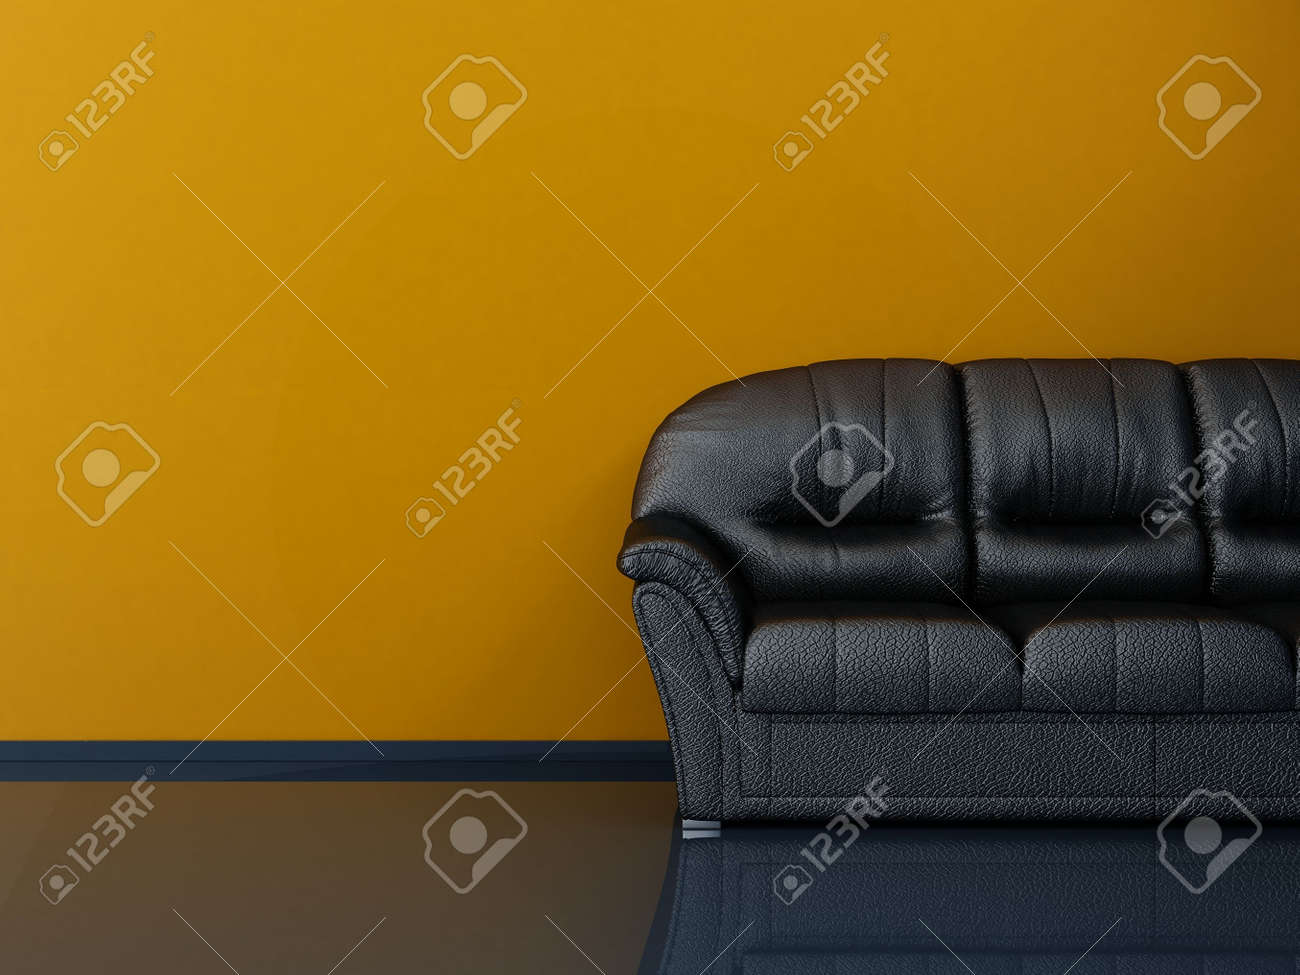 Black Leather Couch To Face A Blank Yellow Wall - With Stone Floor Stock  Photo -